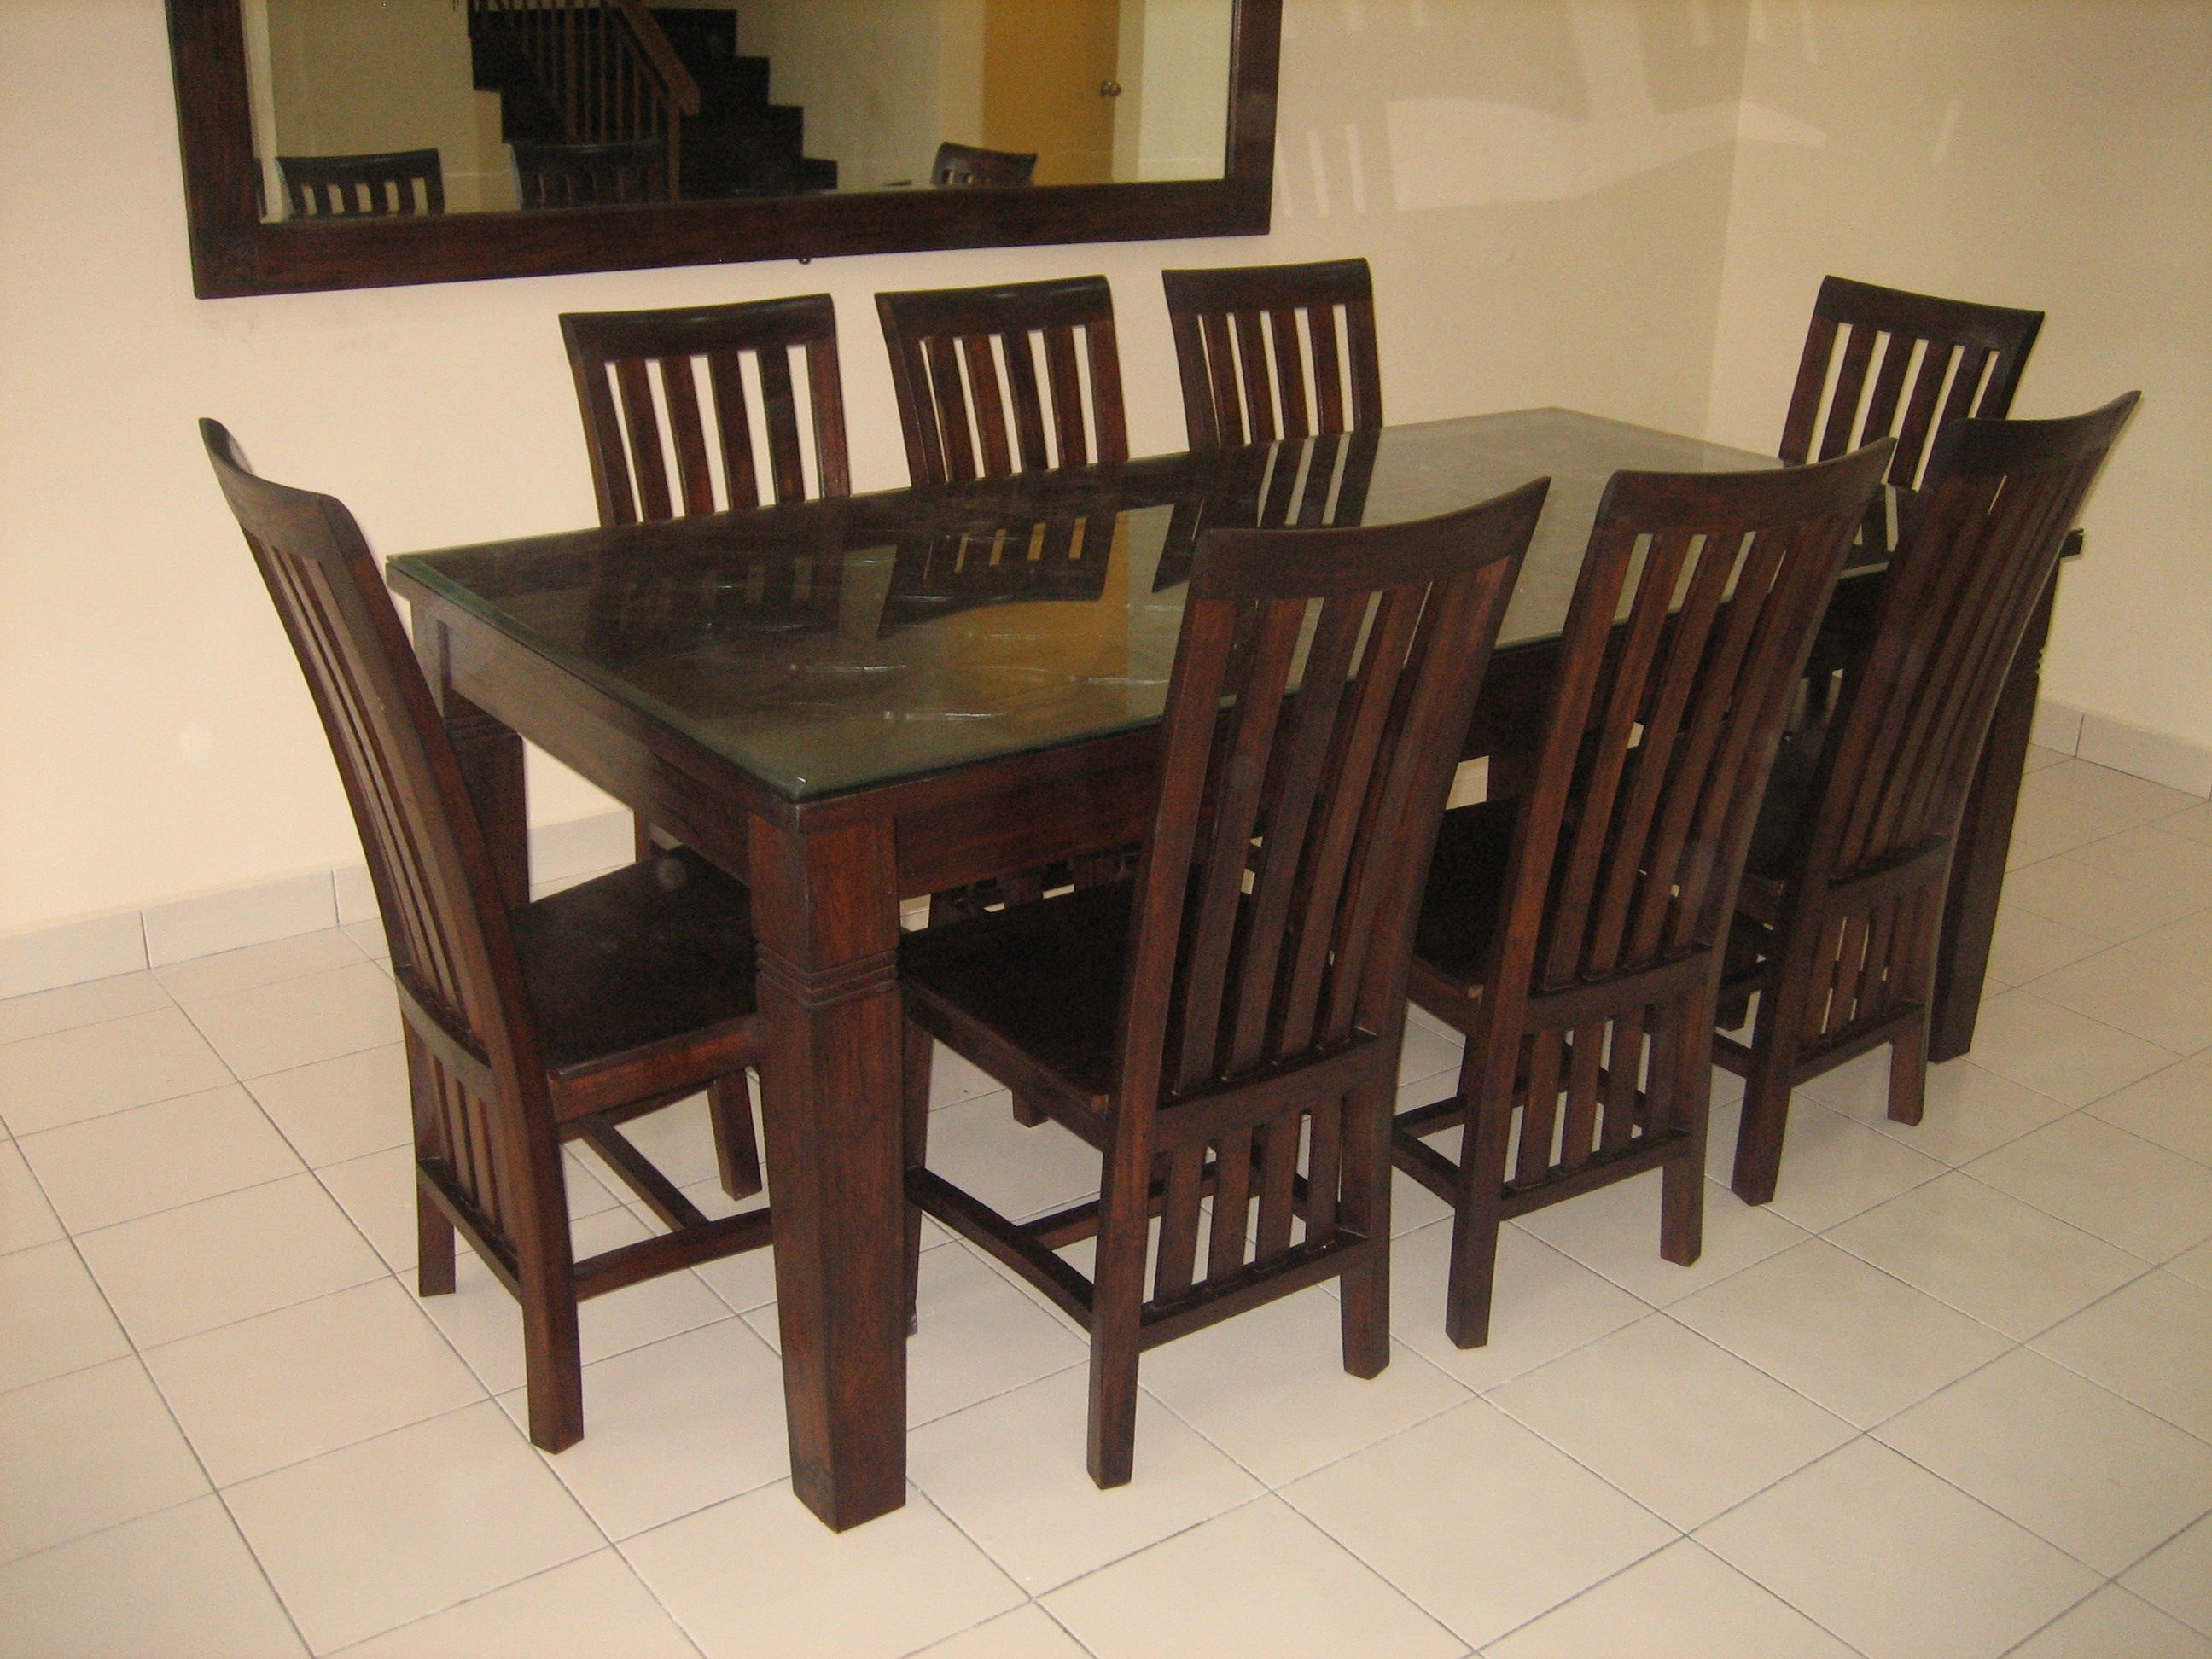 Swell Used Dining Room Table And Chairs For Sale At Tables Evergreenethics Interior Chair Design Evergreenethicsorg